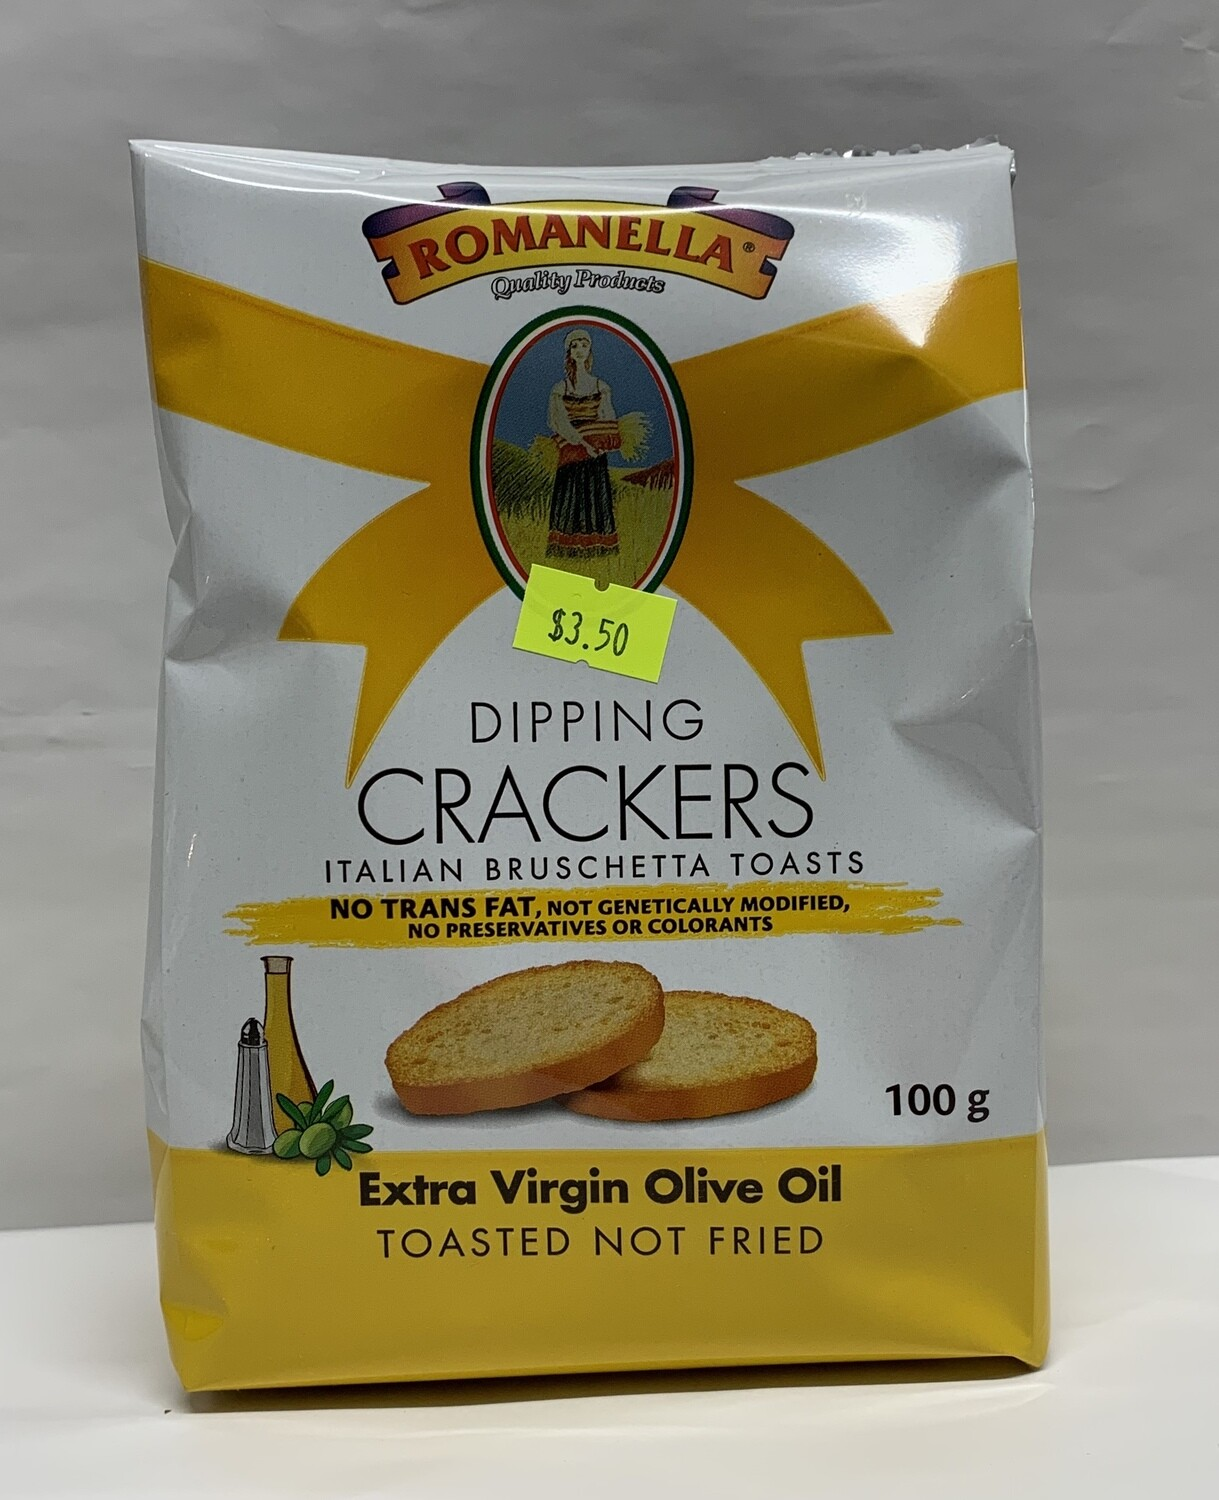 Extra Virgin Olive Oil Crackers (100g)